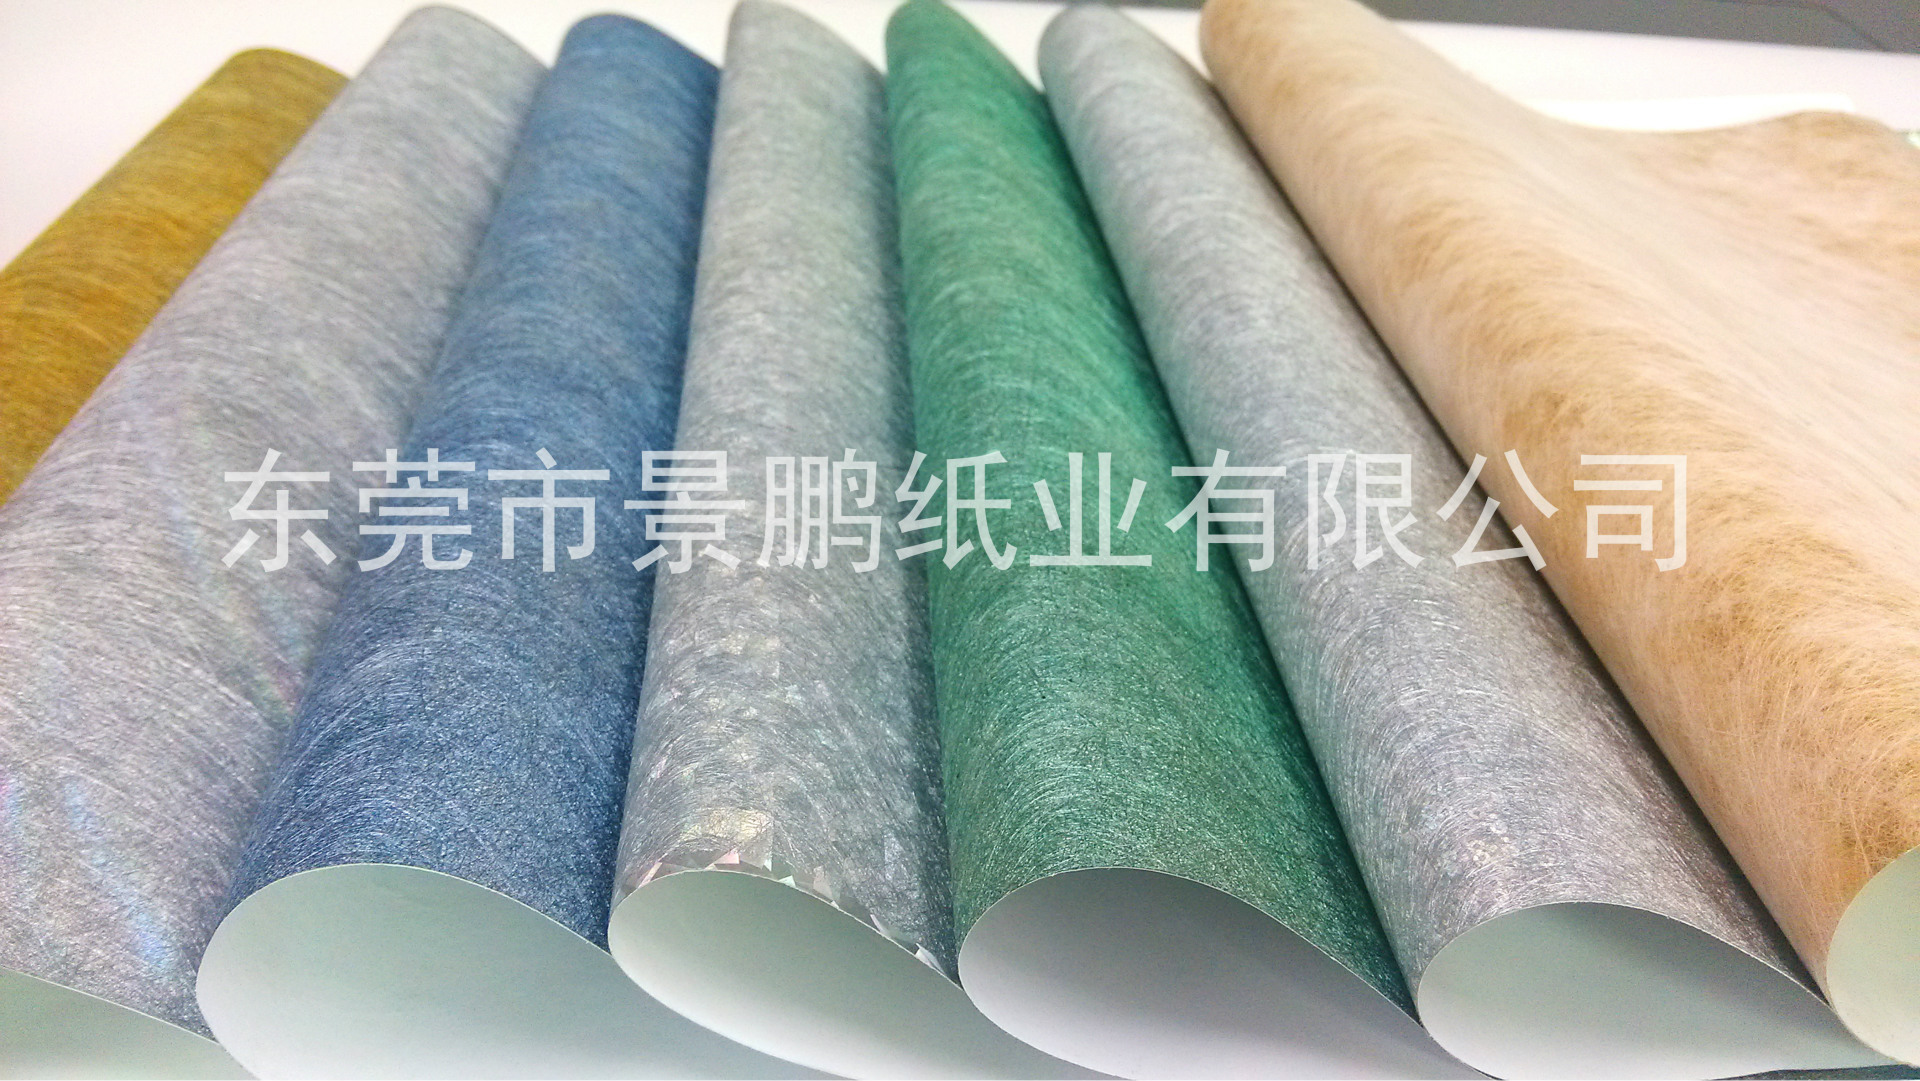 coated paper manufacture research Get expert industry market research on coated & laminated paper manufacturing in the us industry market research reports, statistics, data, trends, forecasts and information.